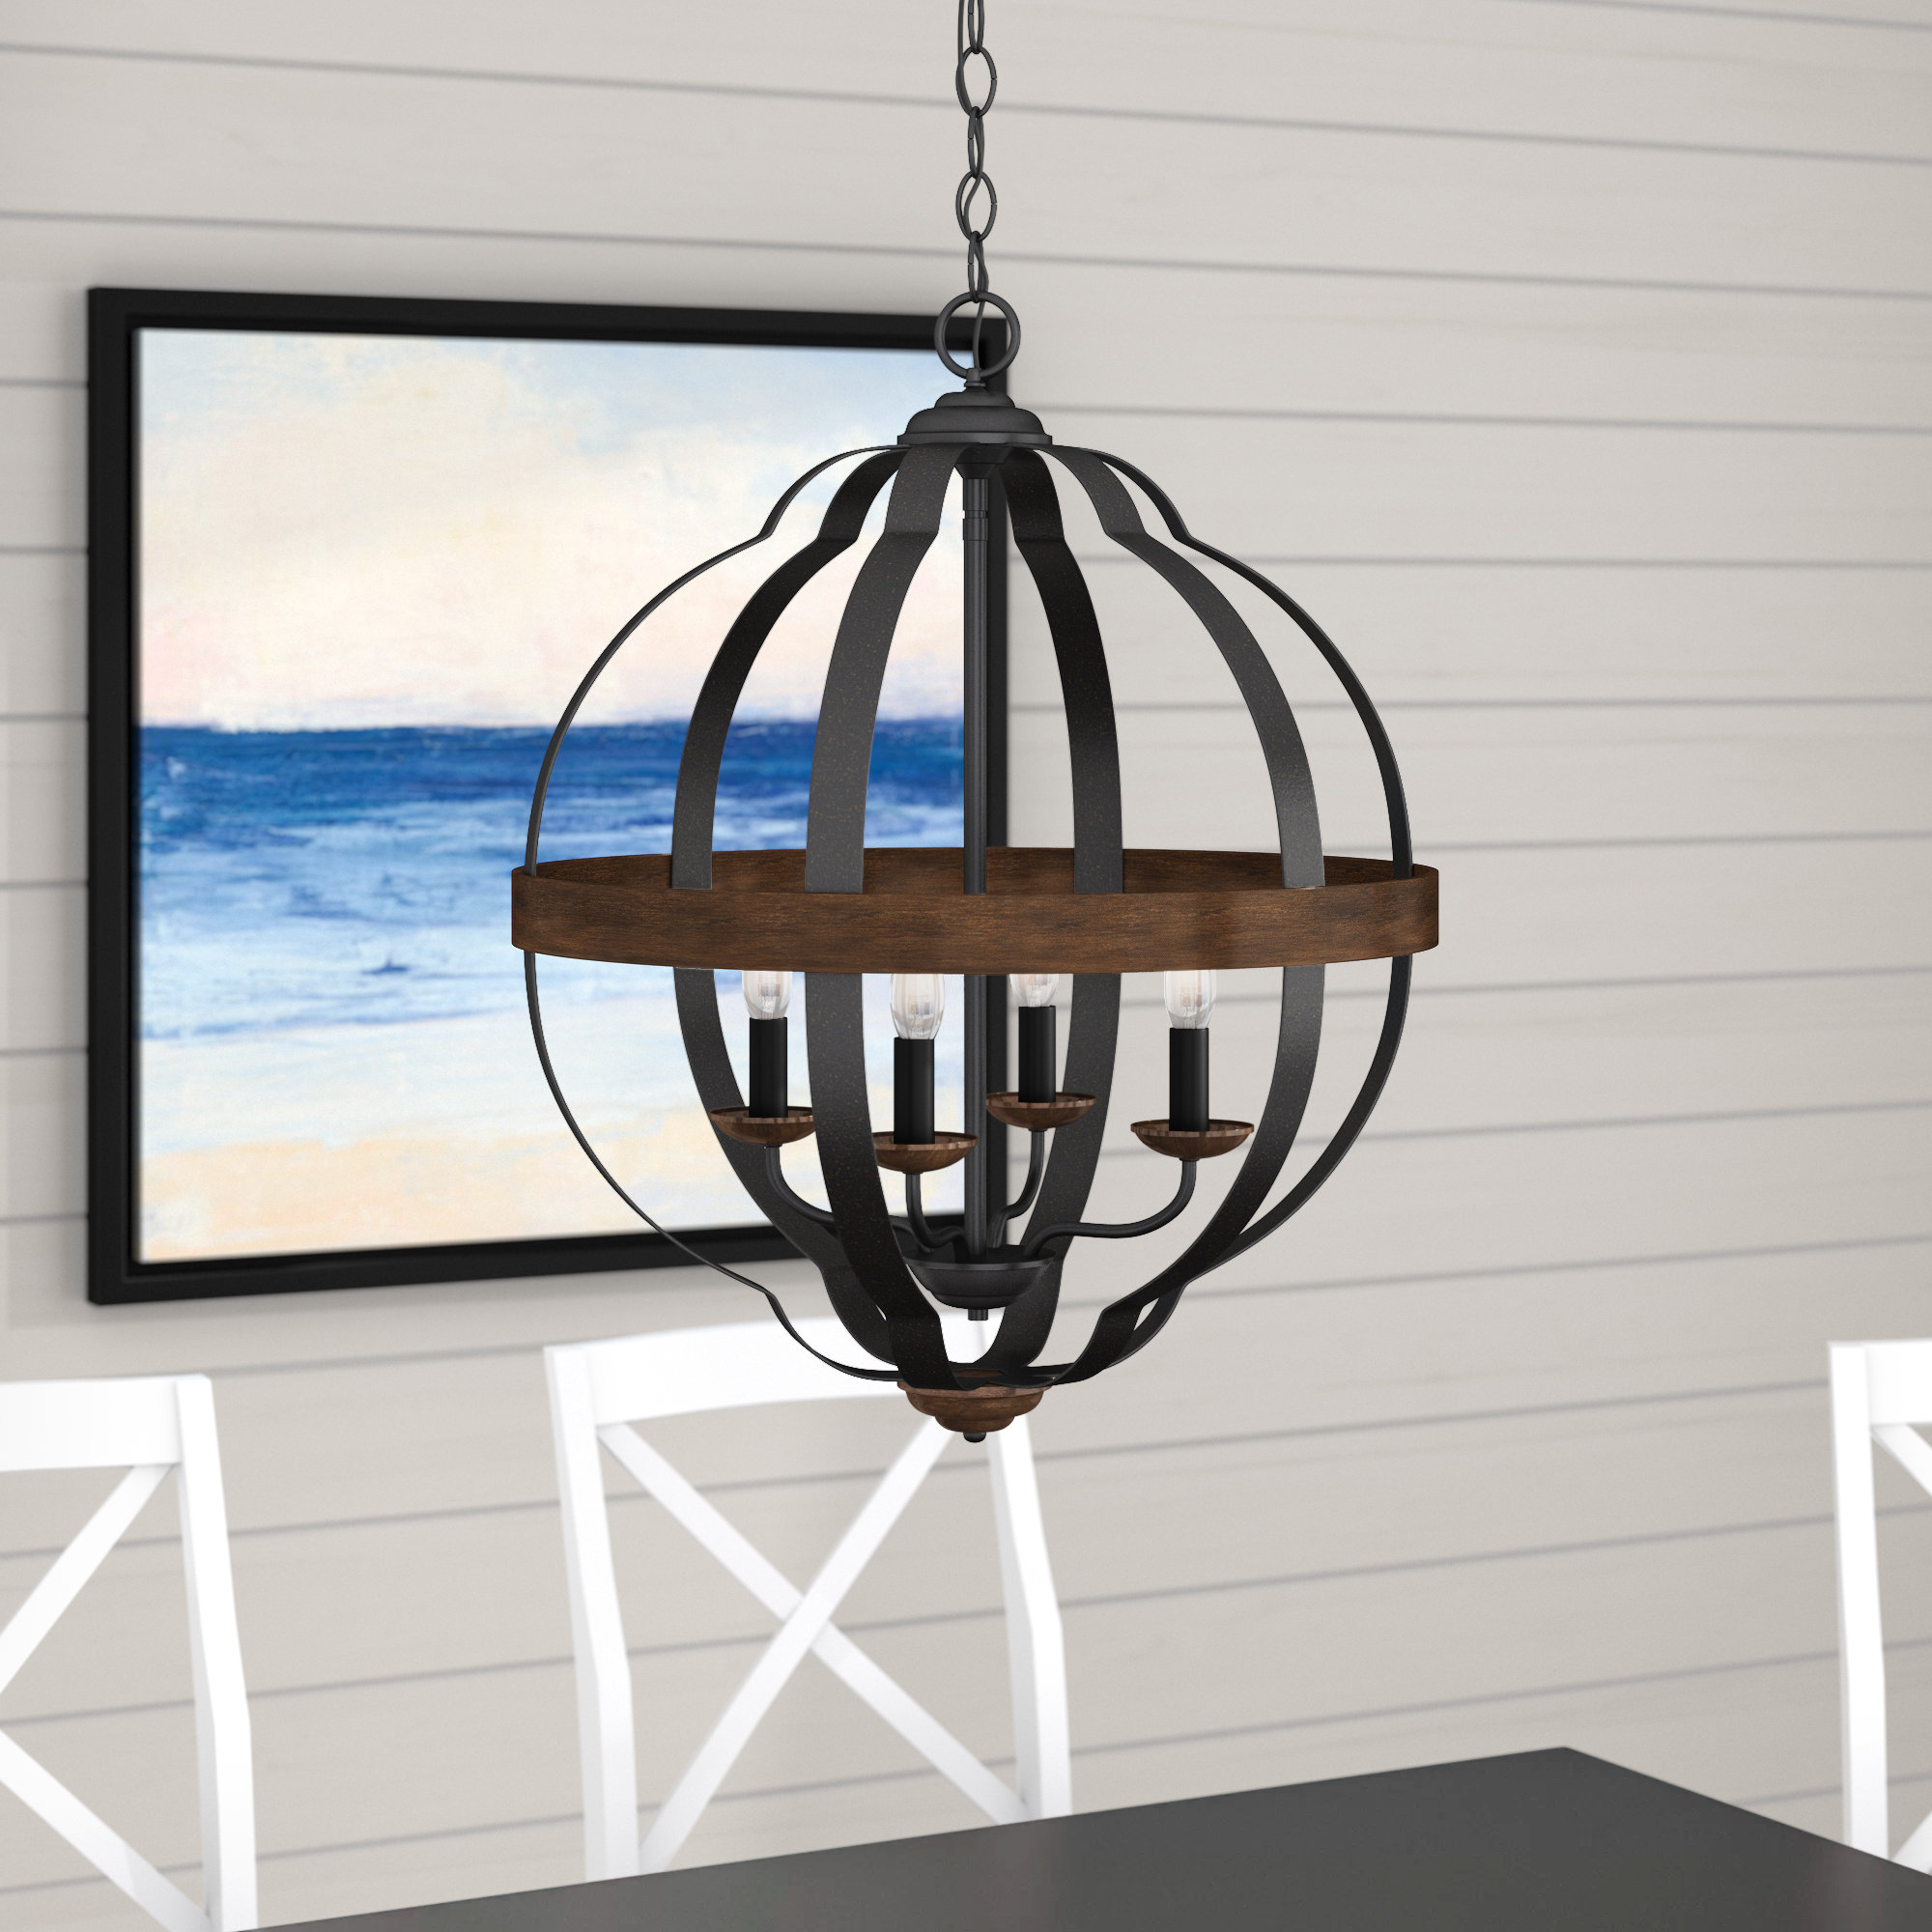 Donna 4 Light Globe Chandeliers Throughout Famous Ingrid 4 Light Globe Chandelier (View 8 of 20)